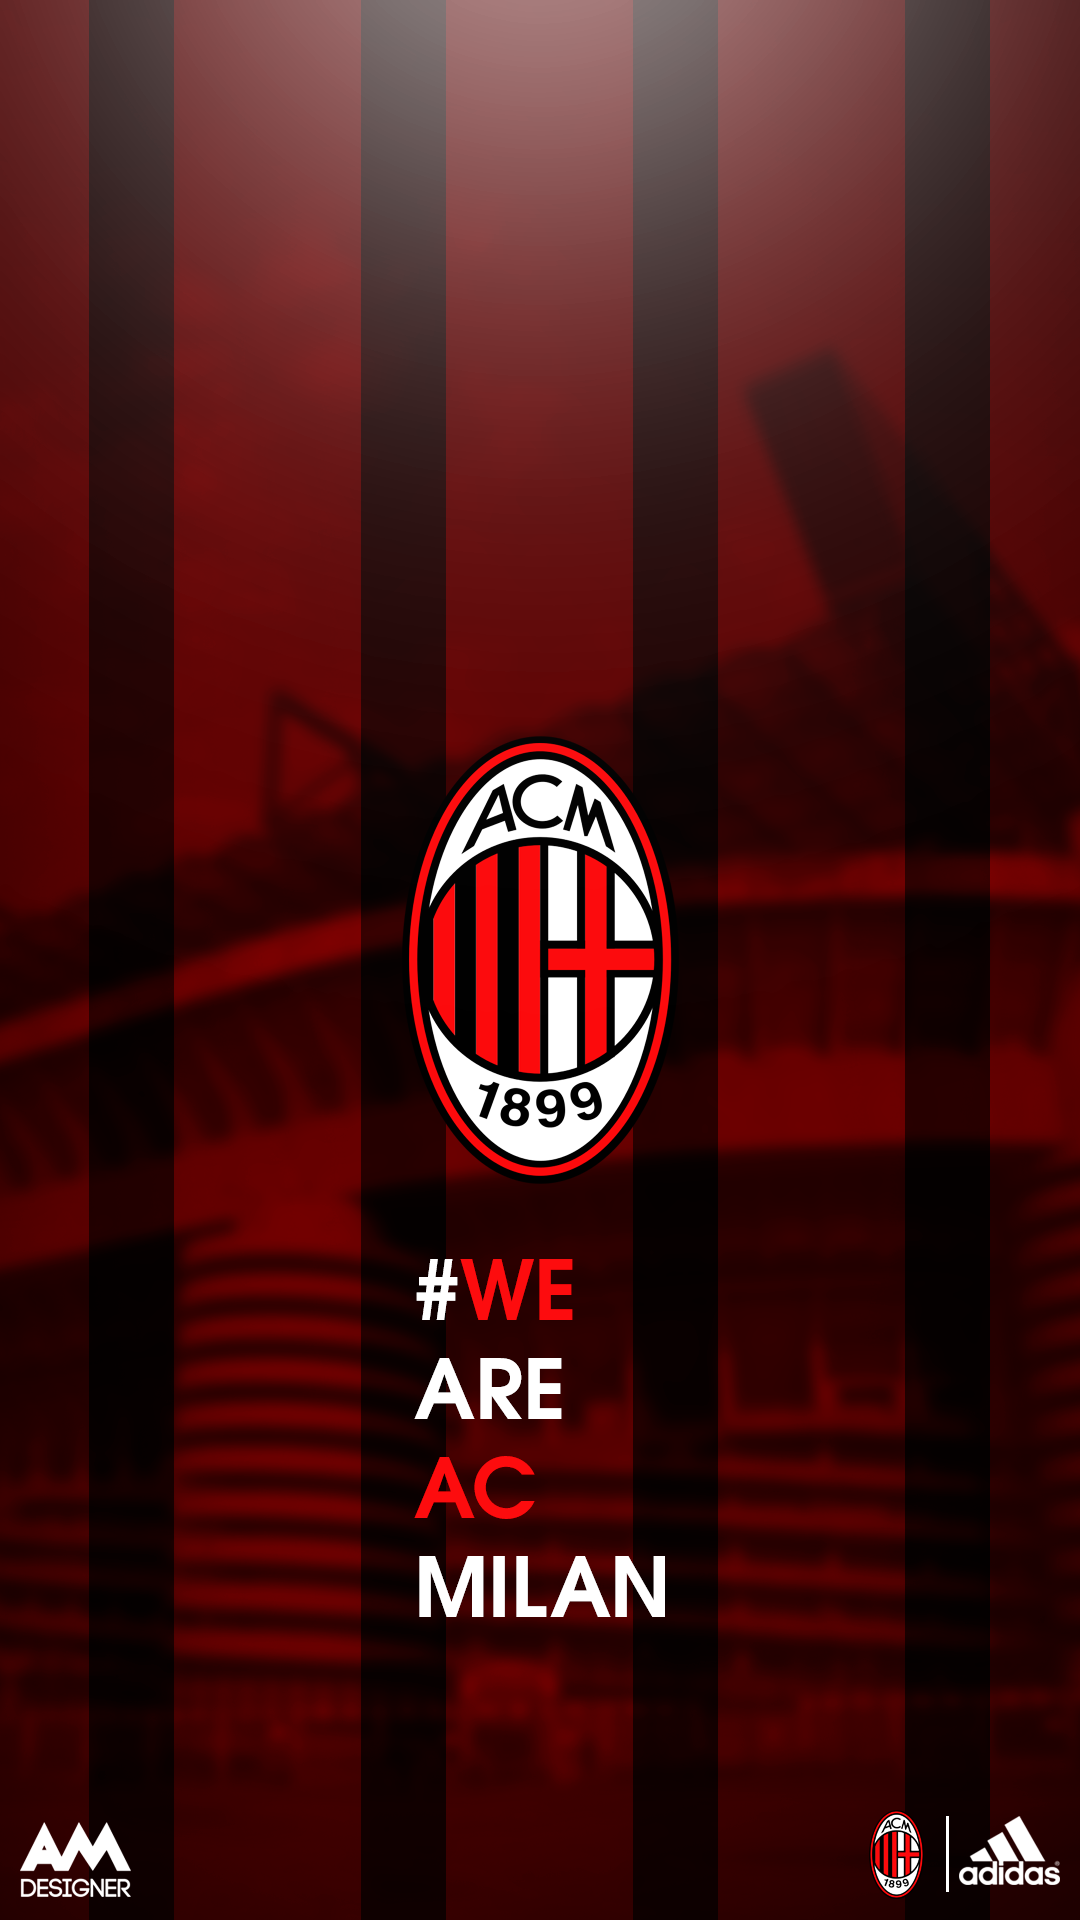 ac milan wallpaper posted by ethan peltier ac milan wallpaper posted by ethan peltier